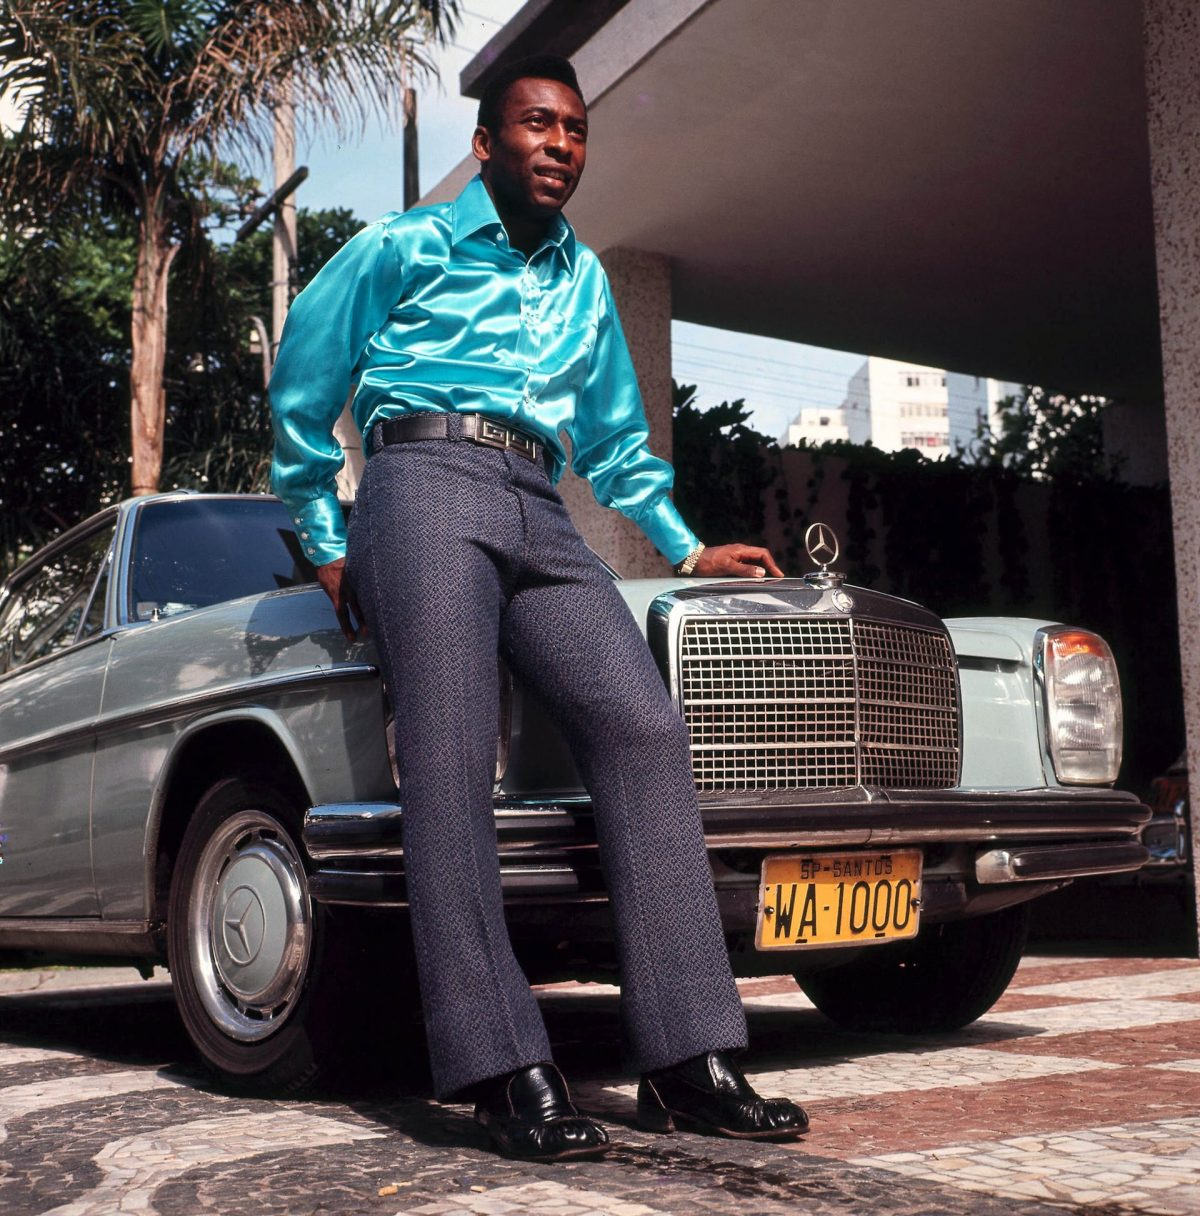 Pele, the star of Brazil's 1970 World Cup-winning team, poses in front of a Mercedes. Photograph: Popperfoto/Getty Images